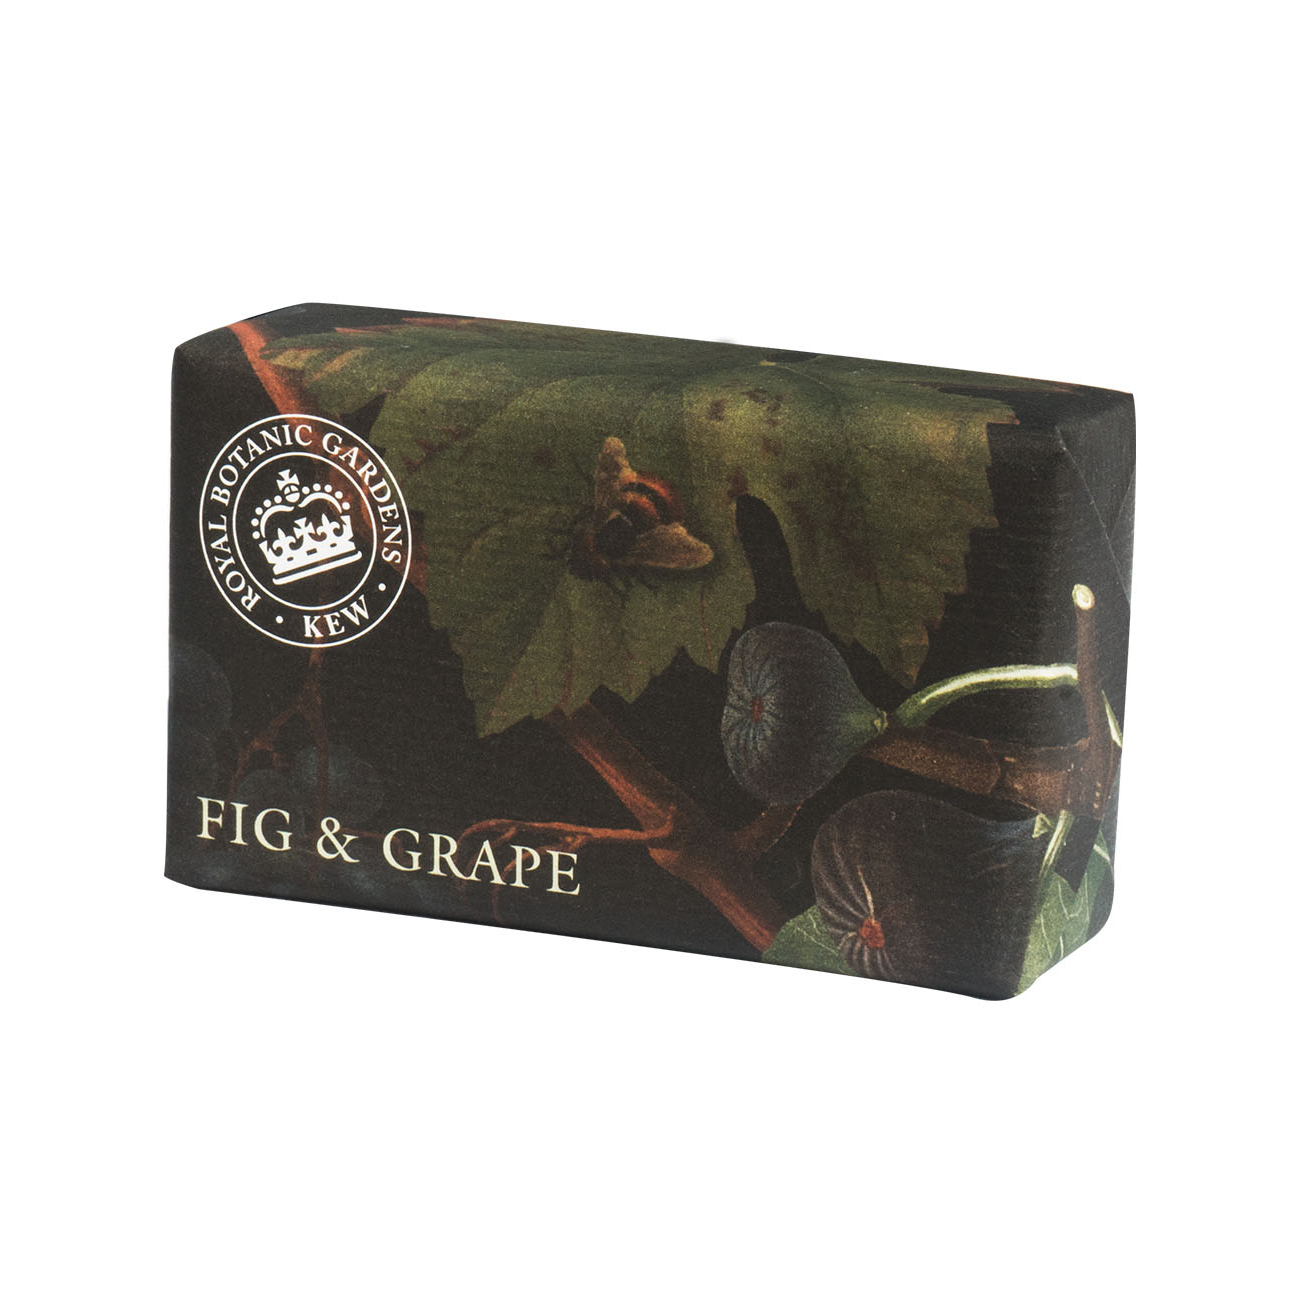 An image of The English Soap Company- Royal Kew Gardens Luxury Soap Range 240g - FIG & GRAPE